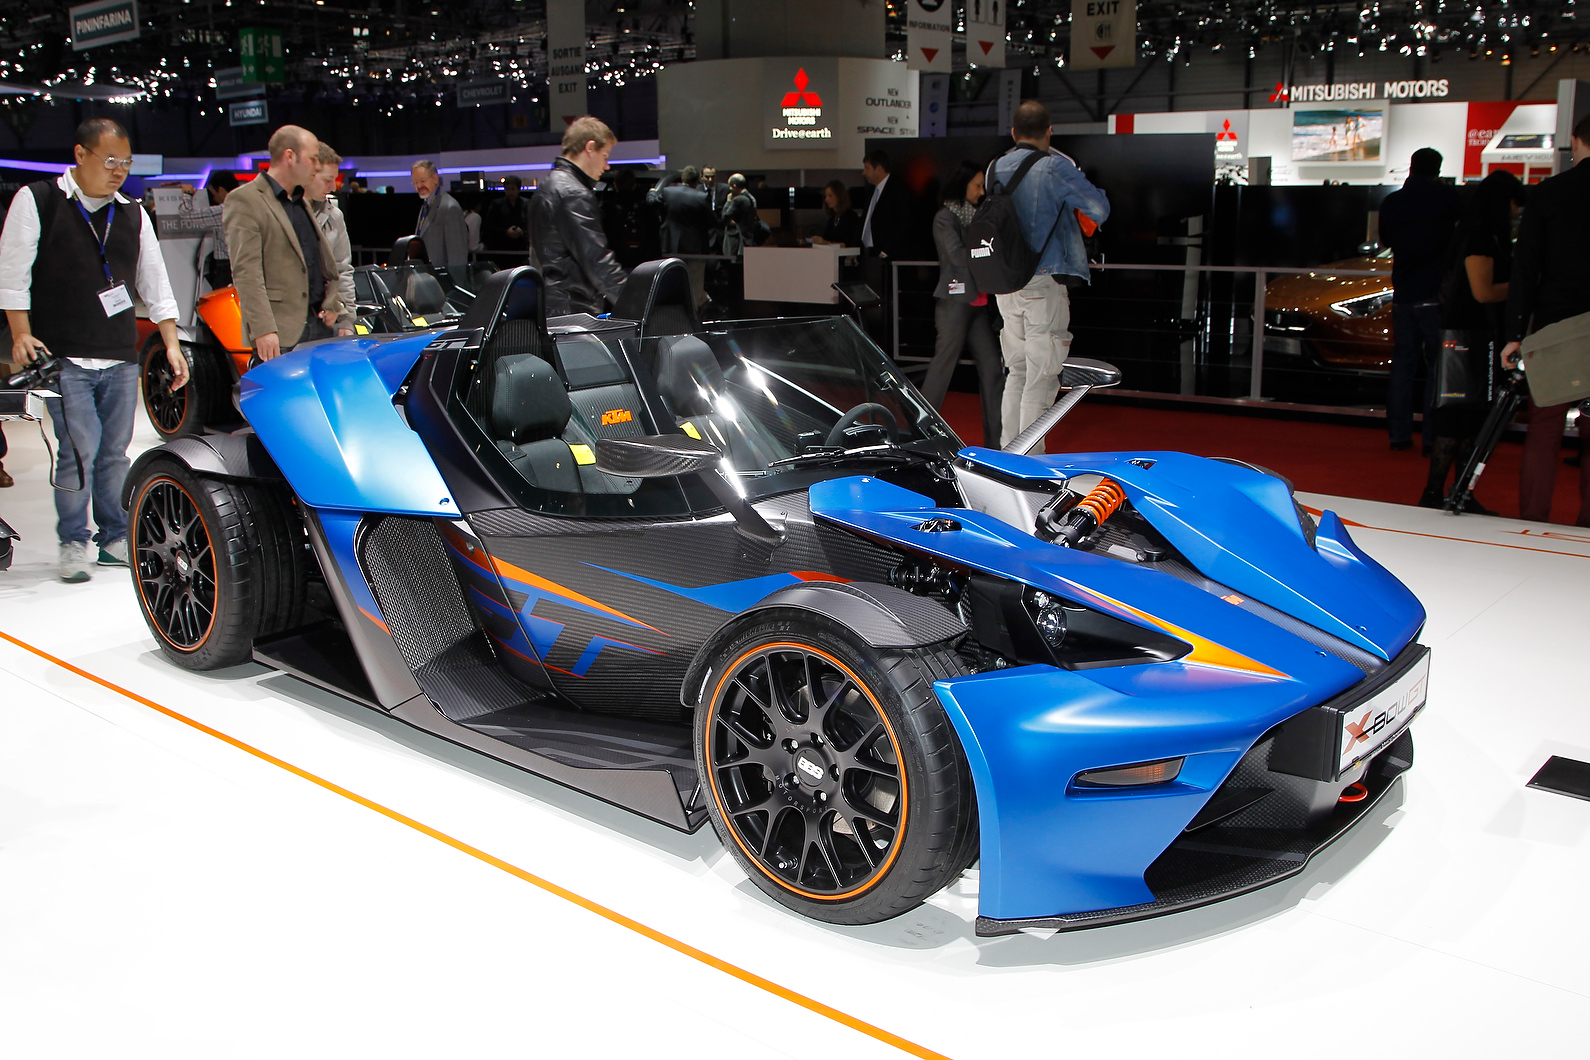 KTM showcased the updated X-Bow.